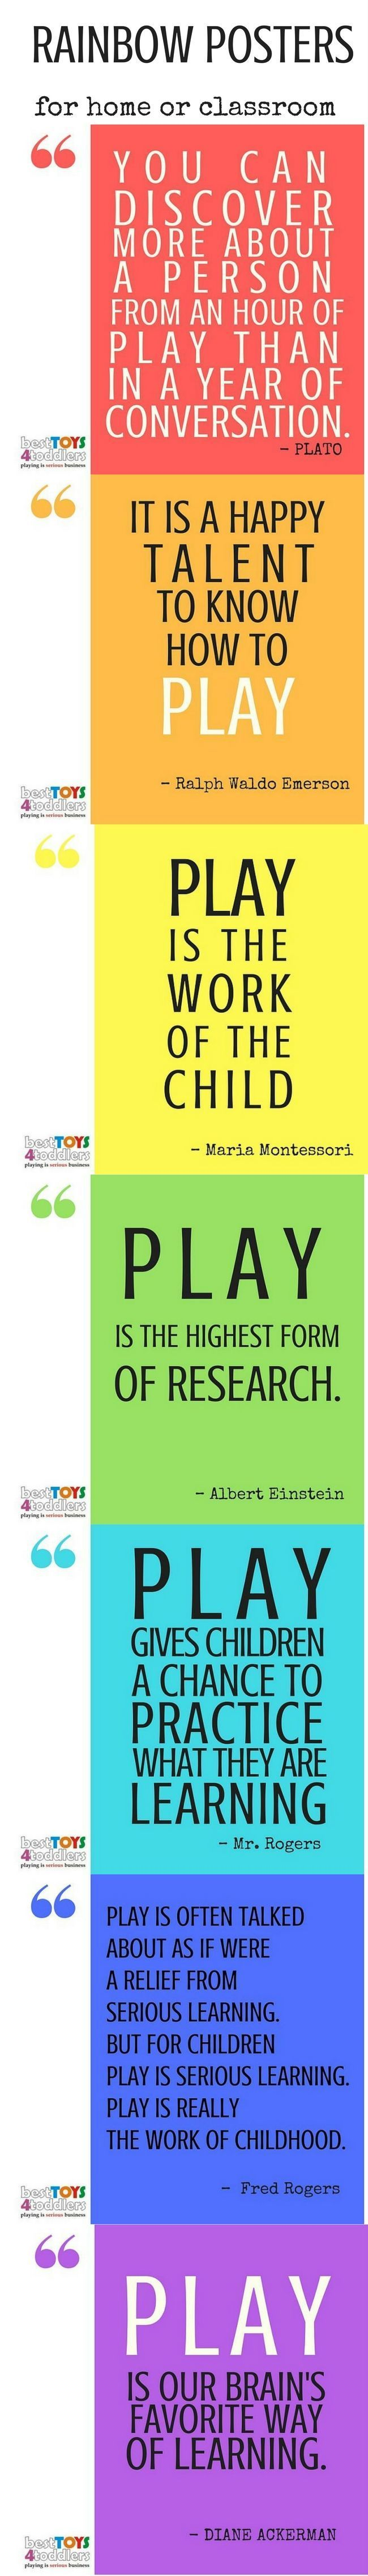 Rainbow Quotes about Importance of Play for Children